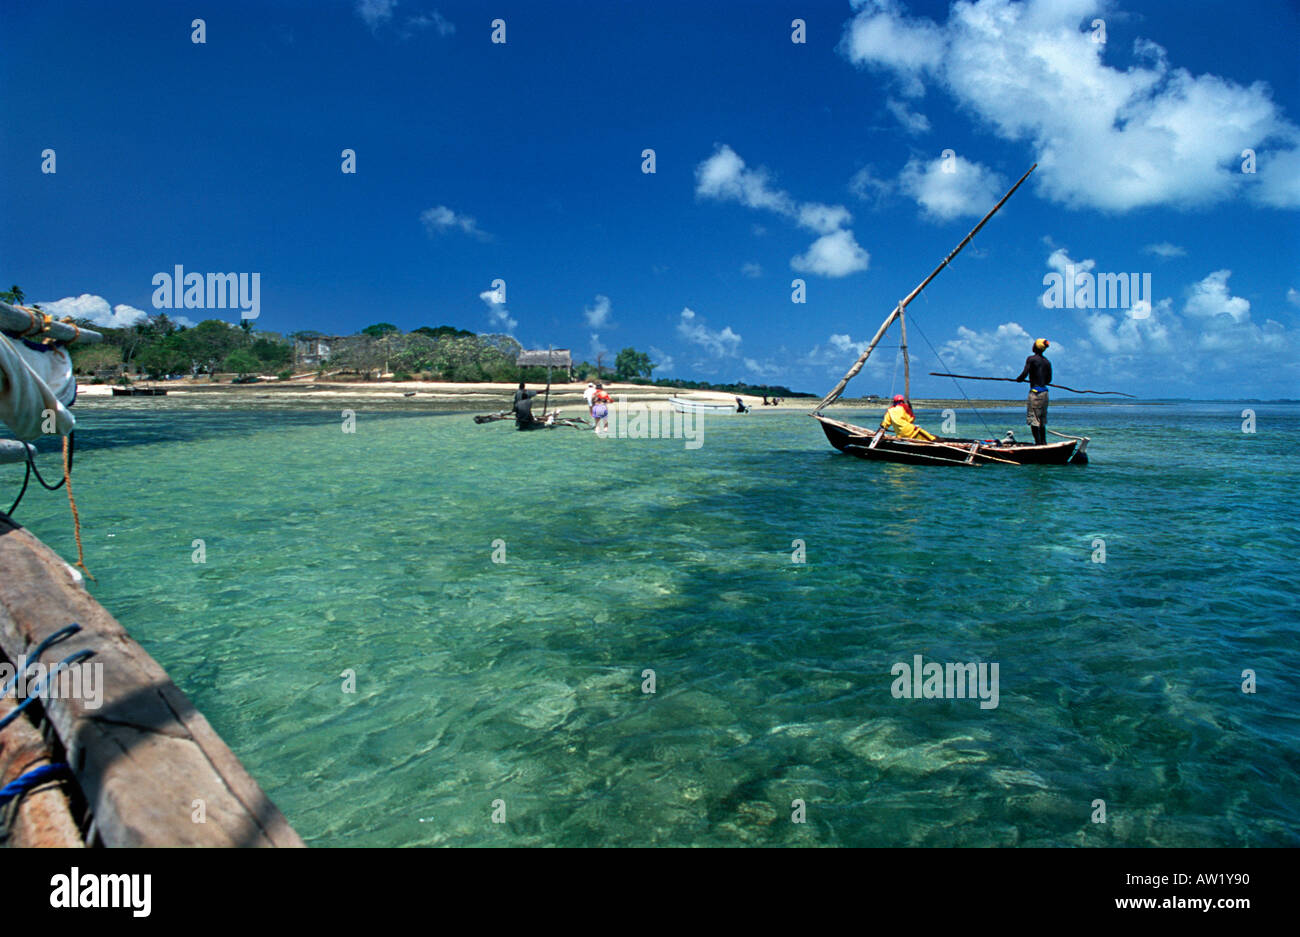 Disembarking from a dhow at low tide onto the small island of Chole beside Mafia island Tanzania - Stock Image